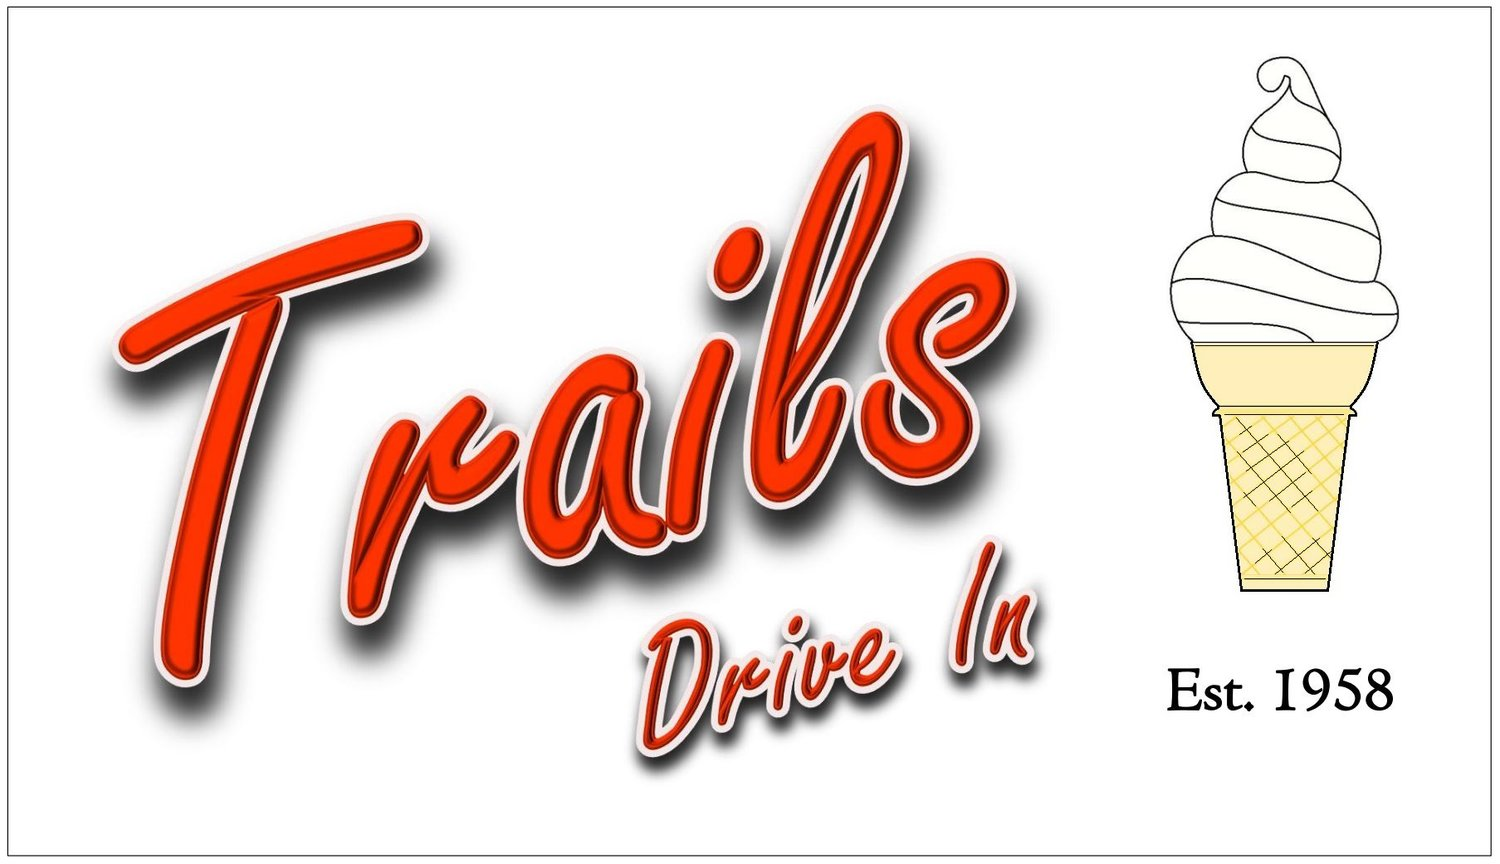 Trails Drive In